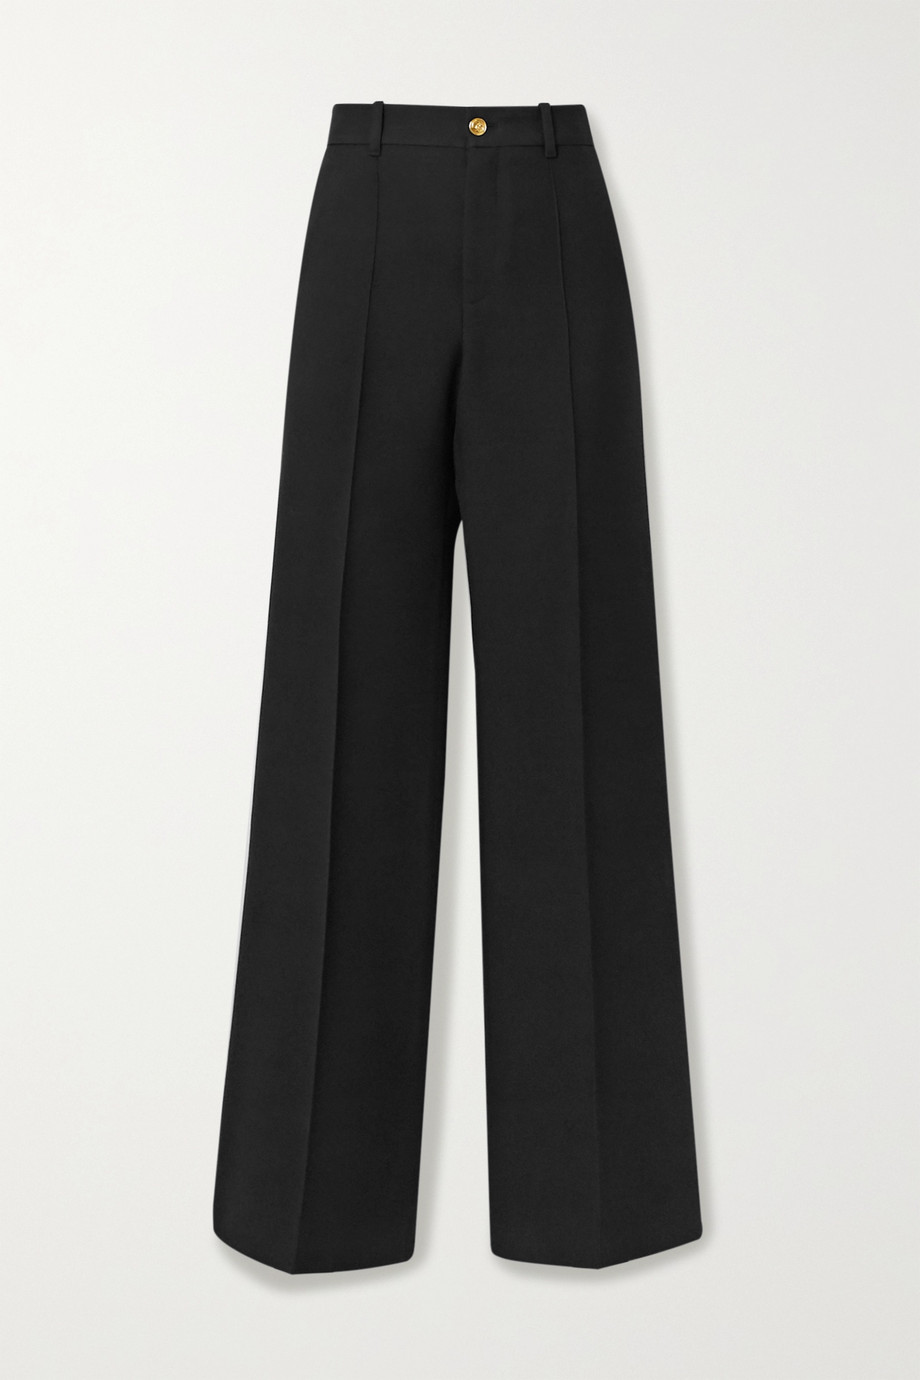 Gucci Silk and wool-blend wide-leg pants